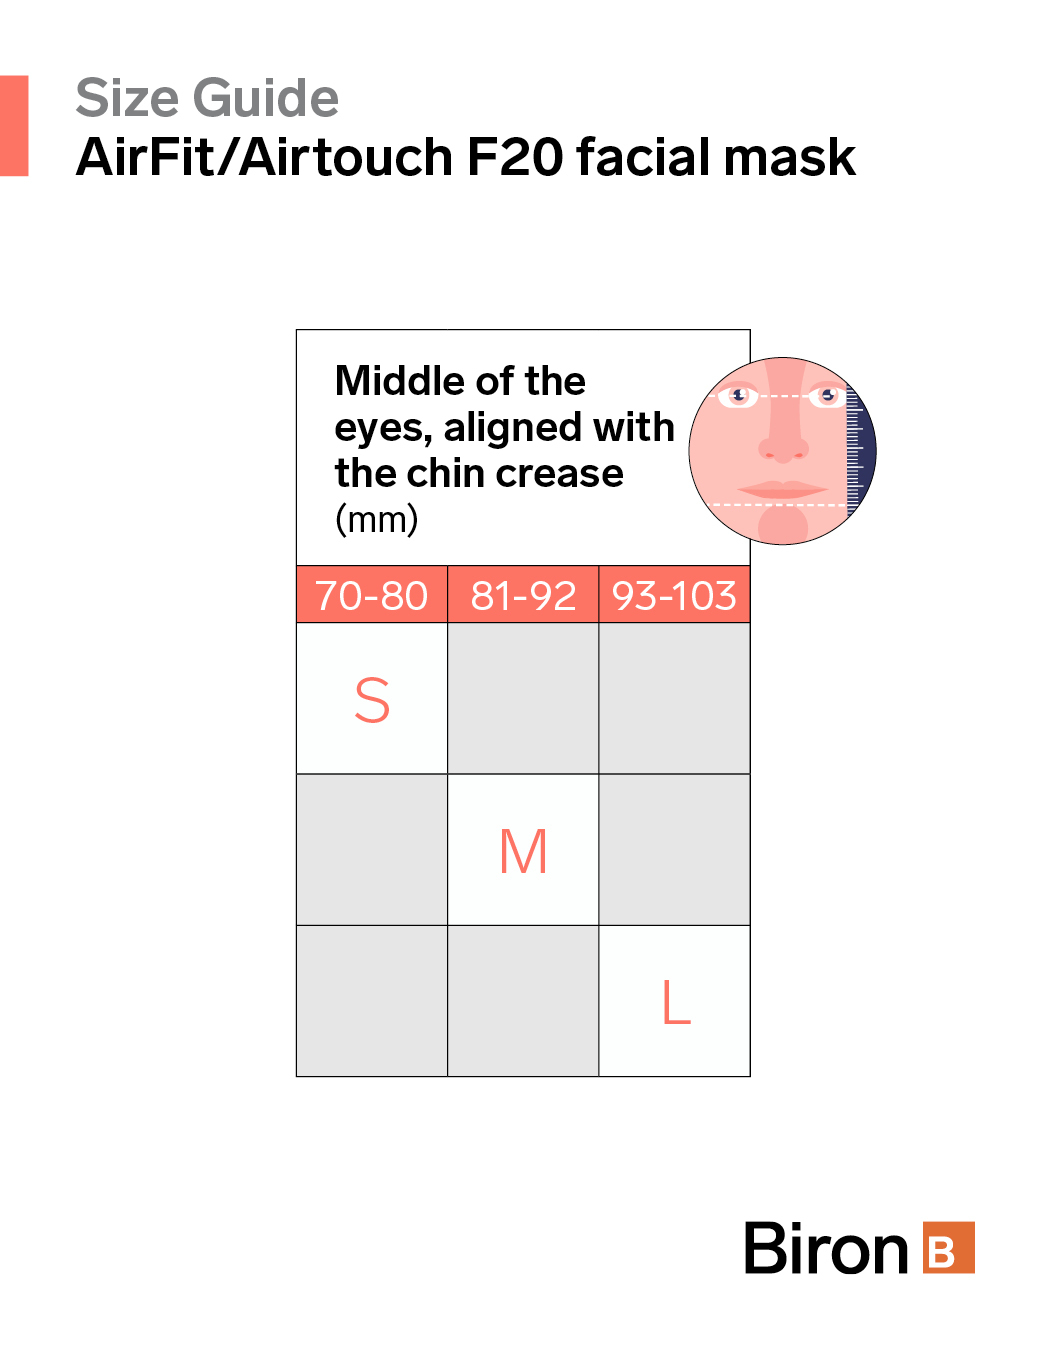 Size guide AirFit F20 facial mask